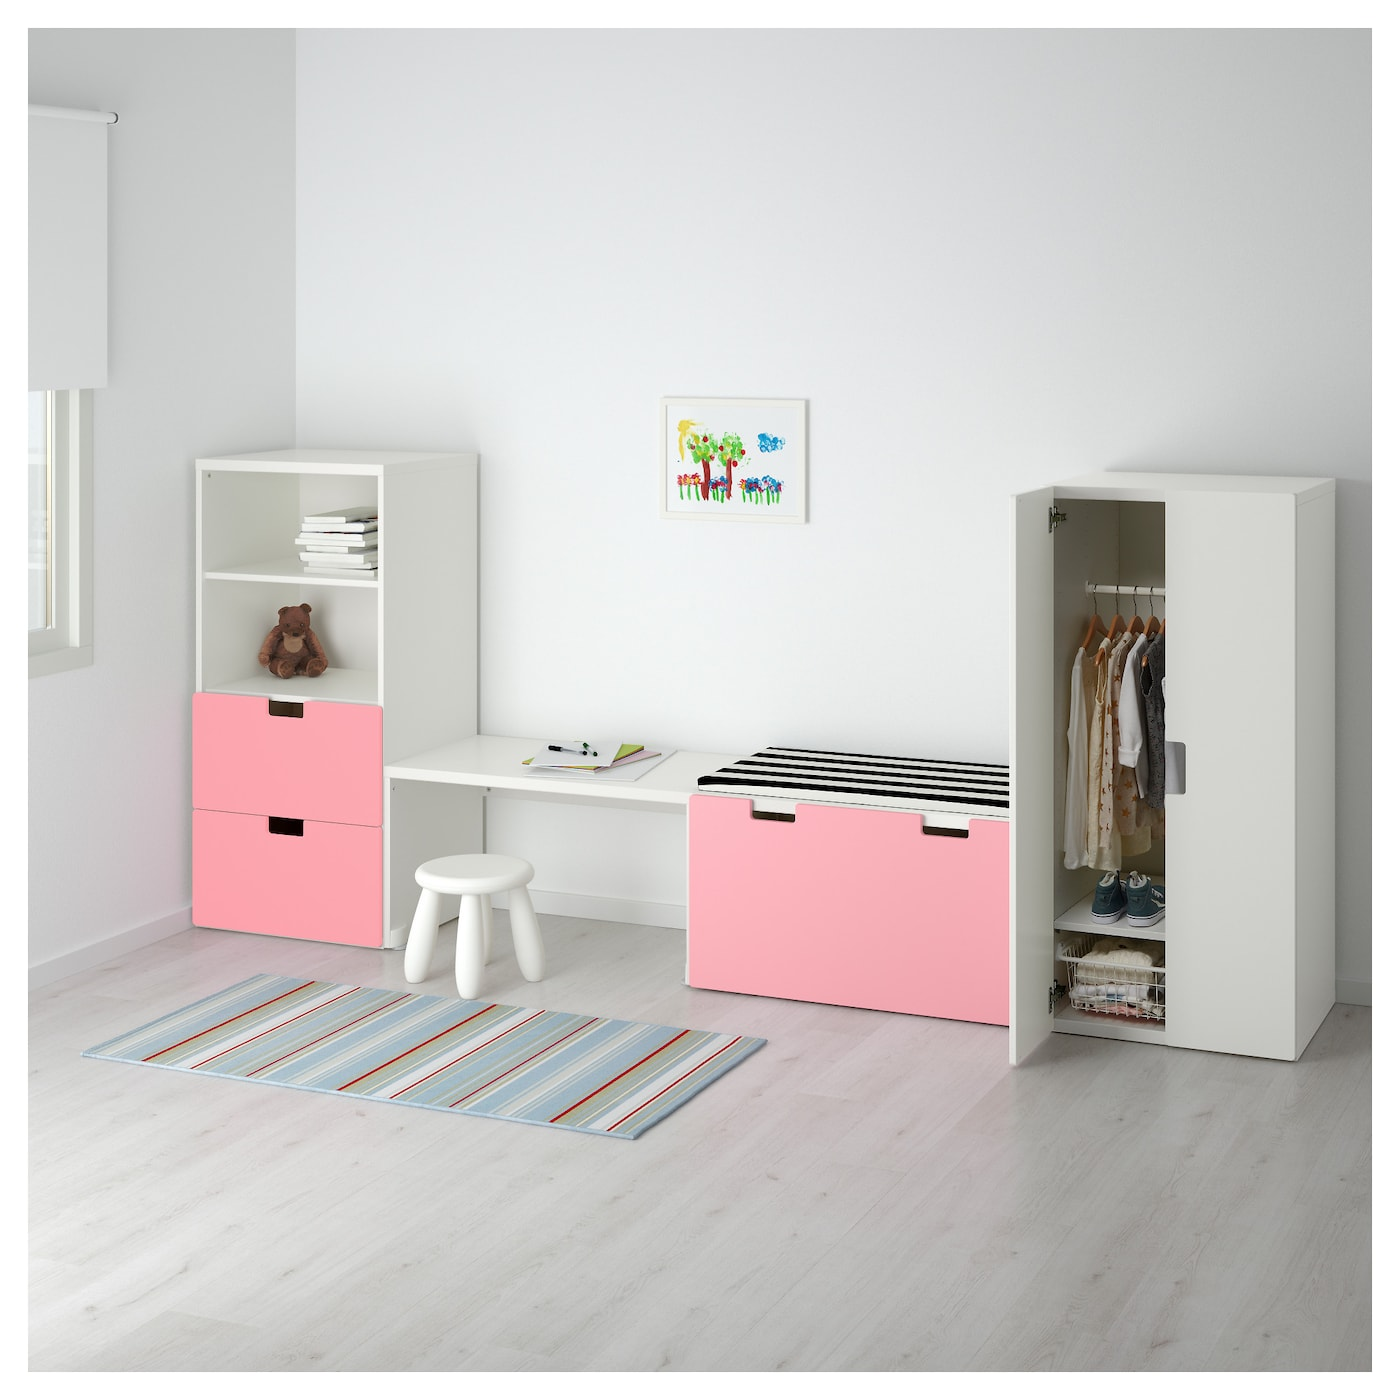 stuva storage combination with bench white pink 300x50x128. Black Bedroom Furniture Sets. Home Design Ideas